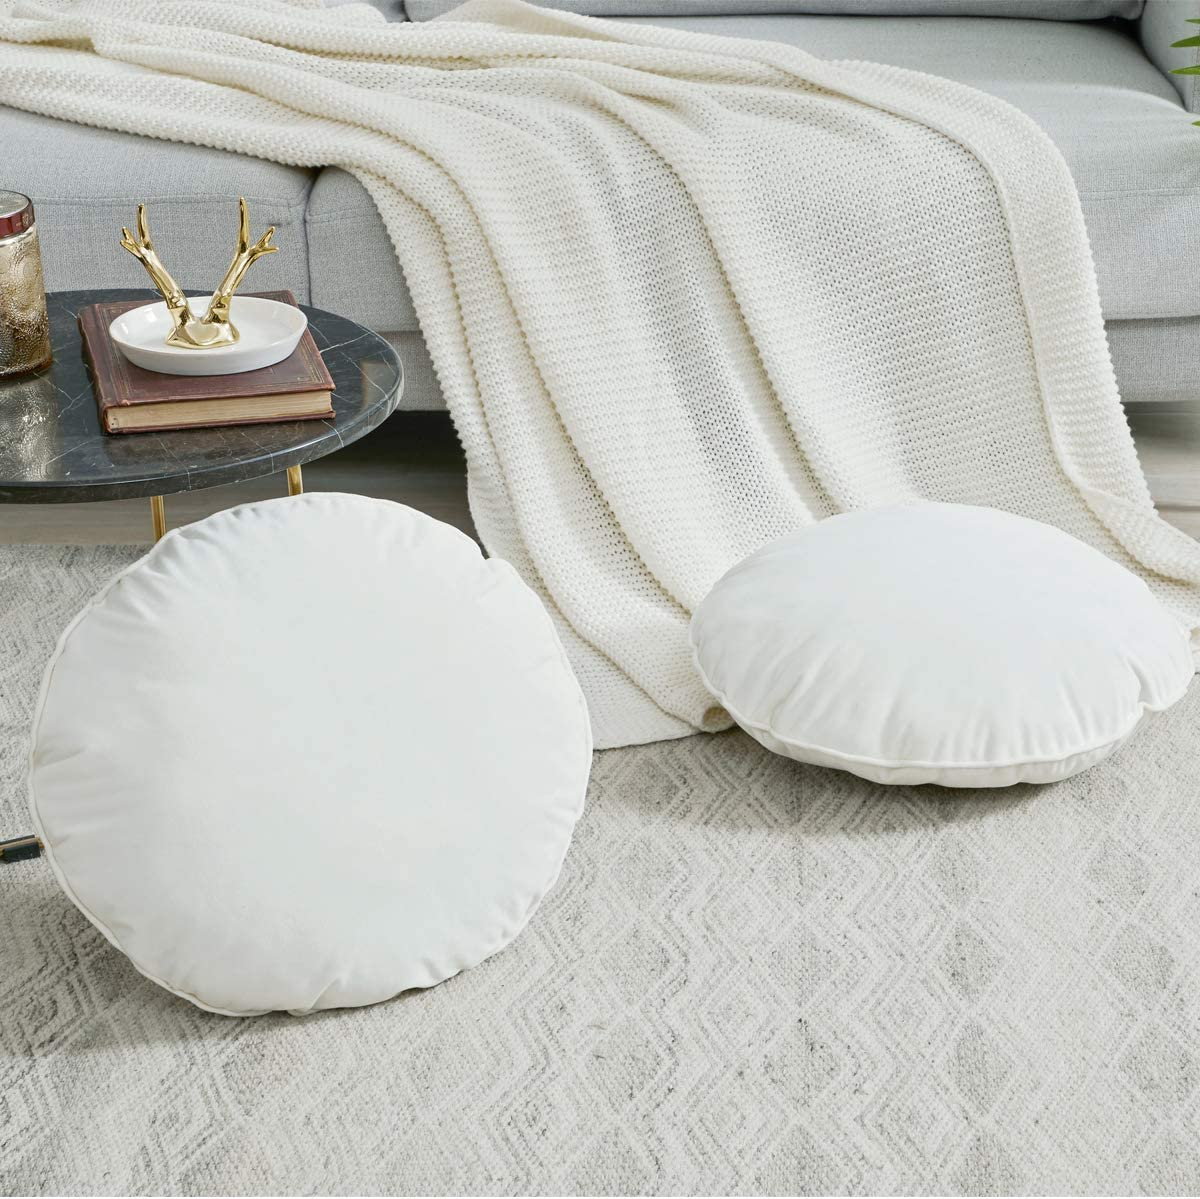 GIGIZAZA Decorative Throw Round Pillows Inserts Set of 2 Velvet 18 White Cushions